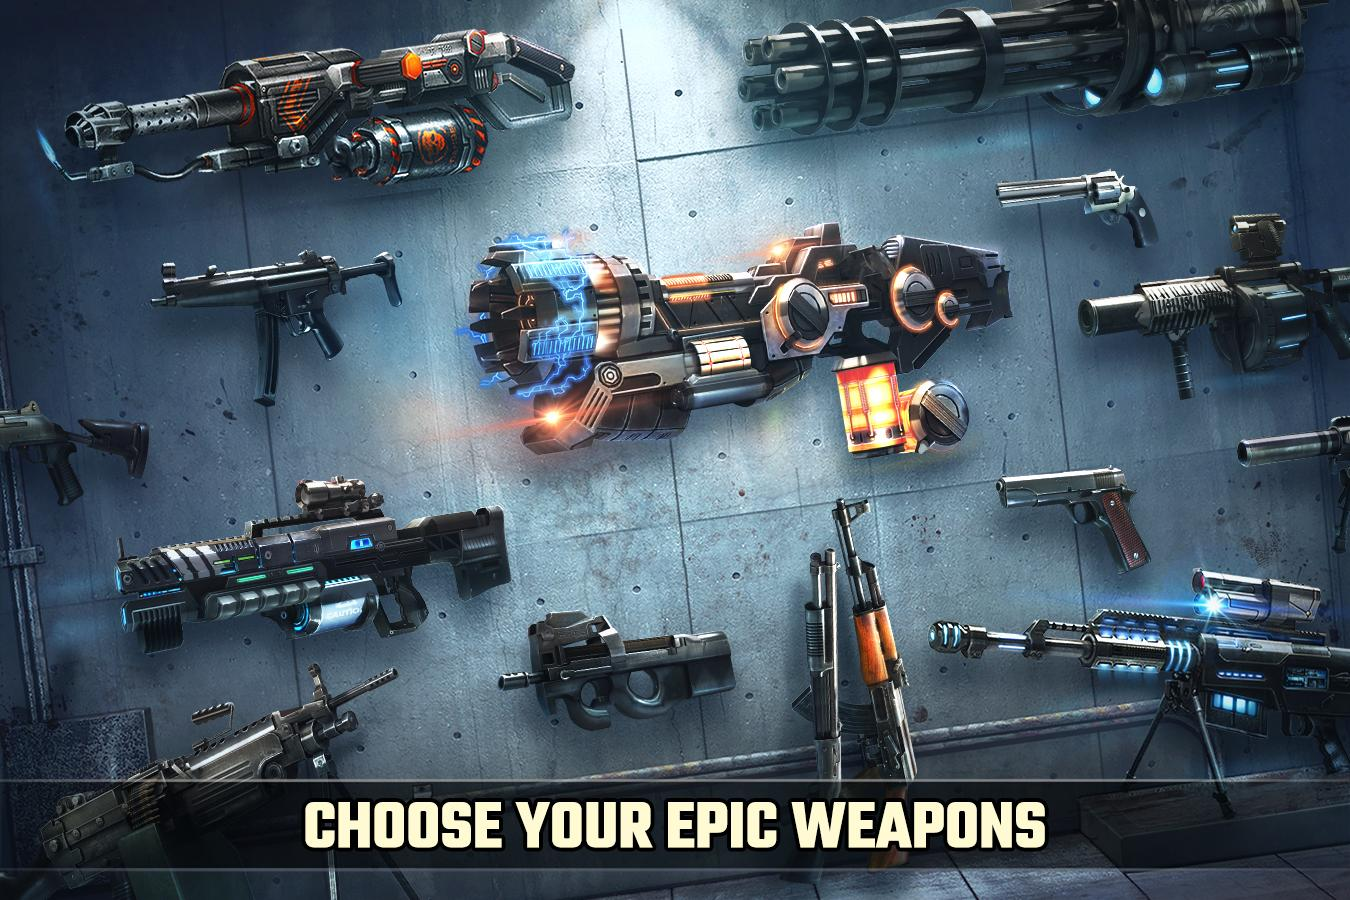 Download Dead Target Mod Apk Unlimited Gold Cash For Android thedroidmod.com